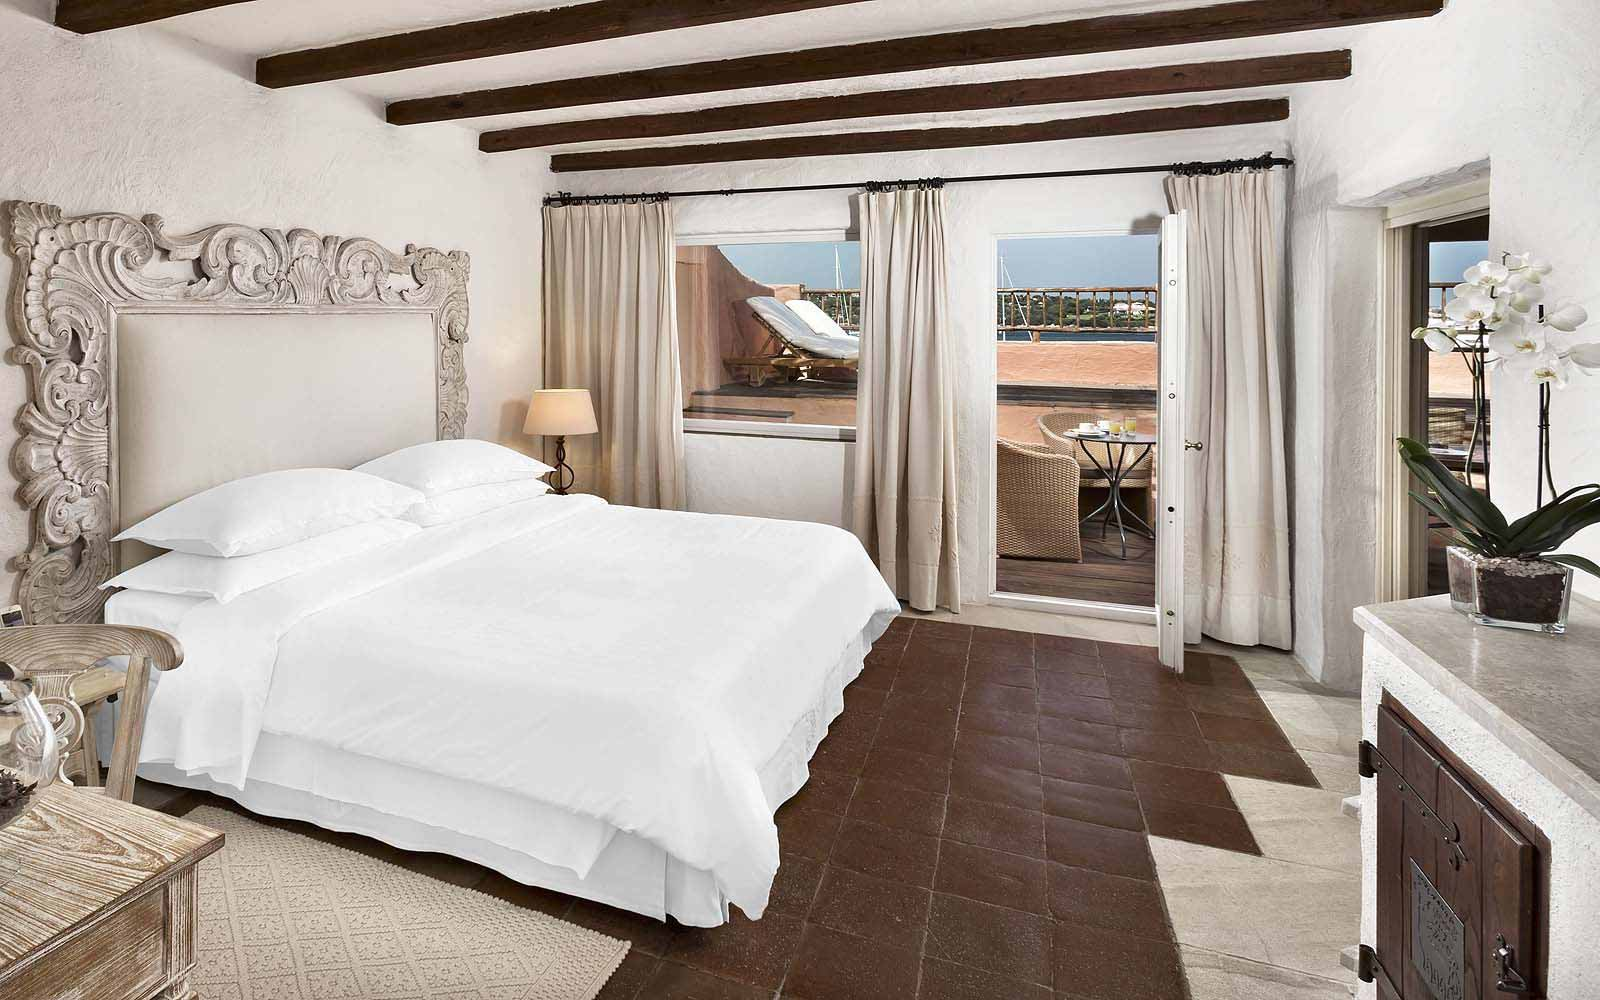 Signature Suite Bedroom at the Hotel Cervo